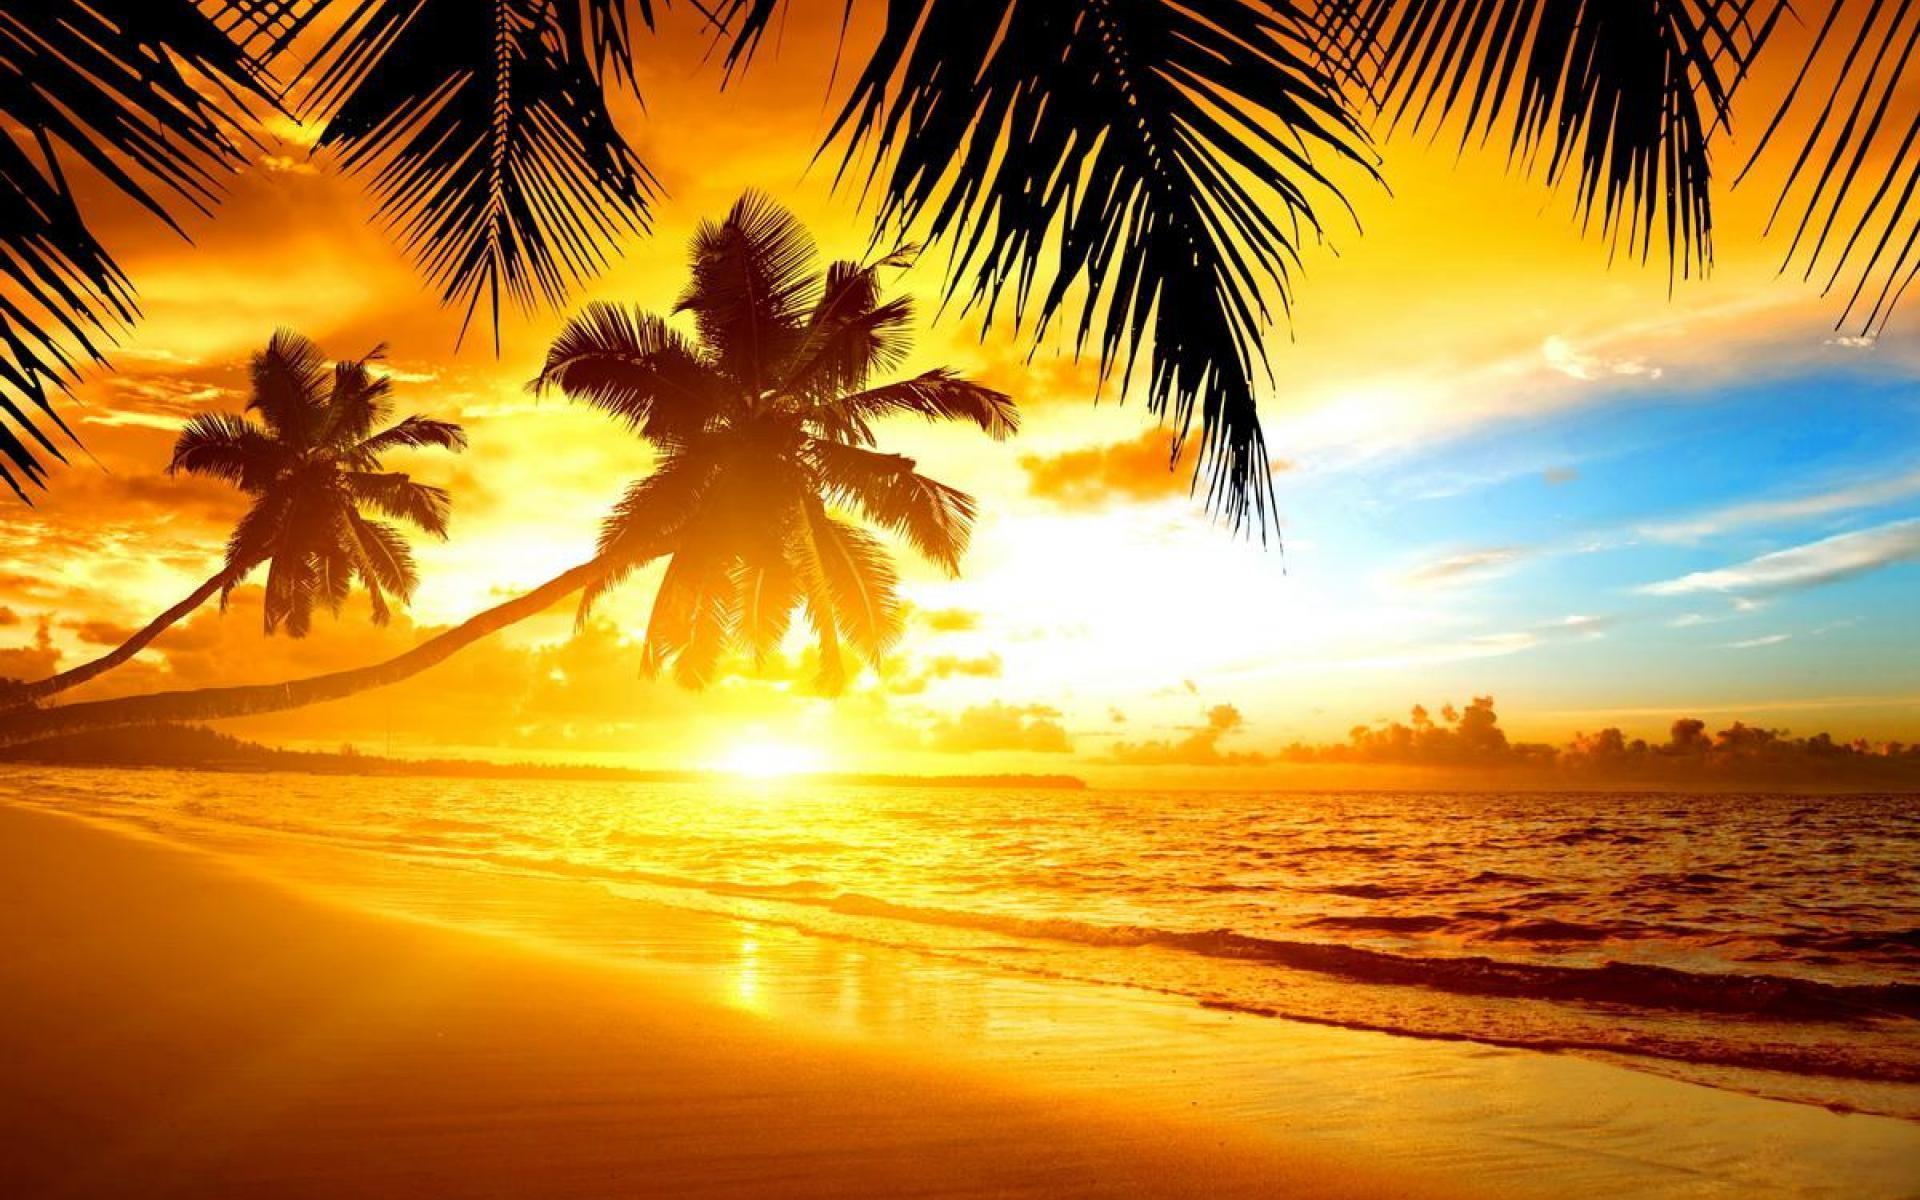 Tropical Island Sunset Wallpaper wwwimgkidcom   The 1920x1200